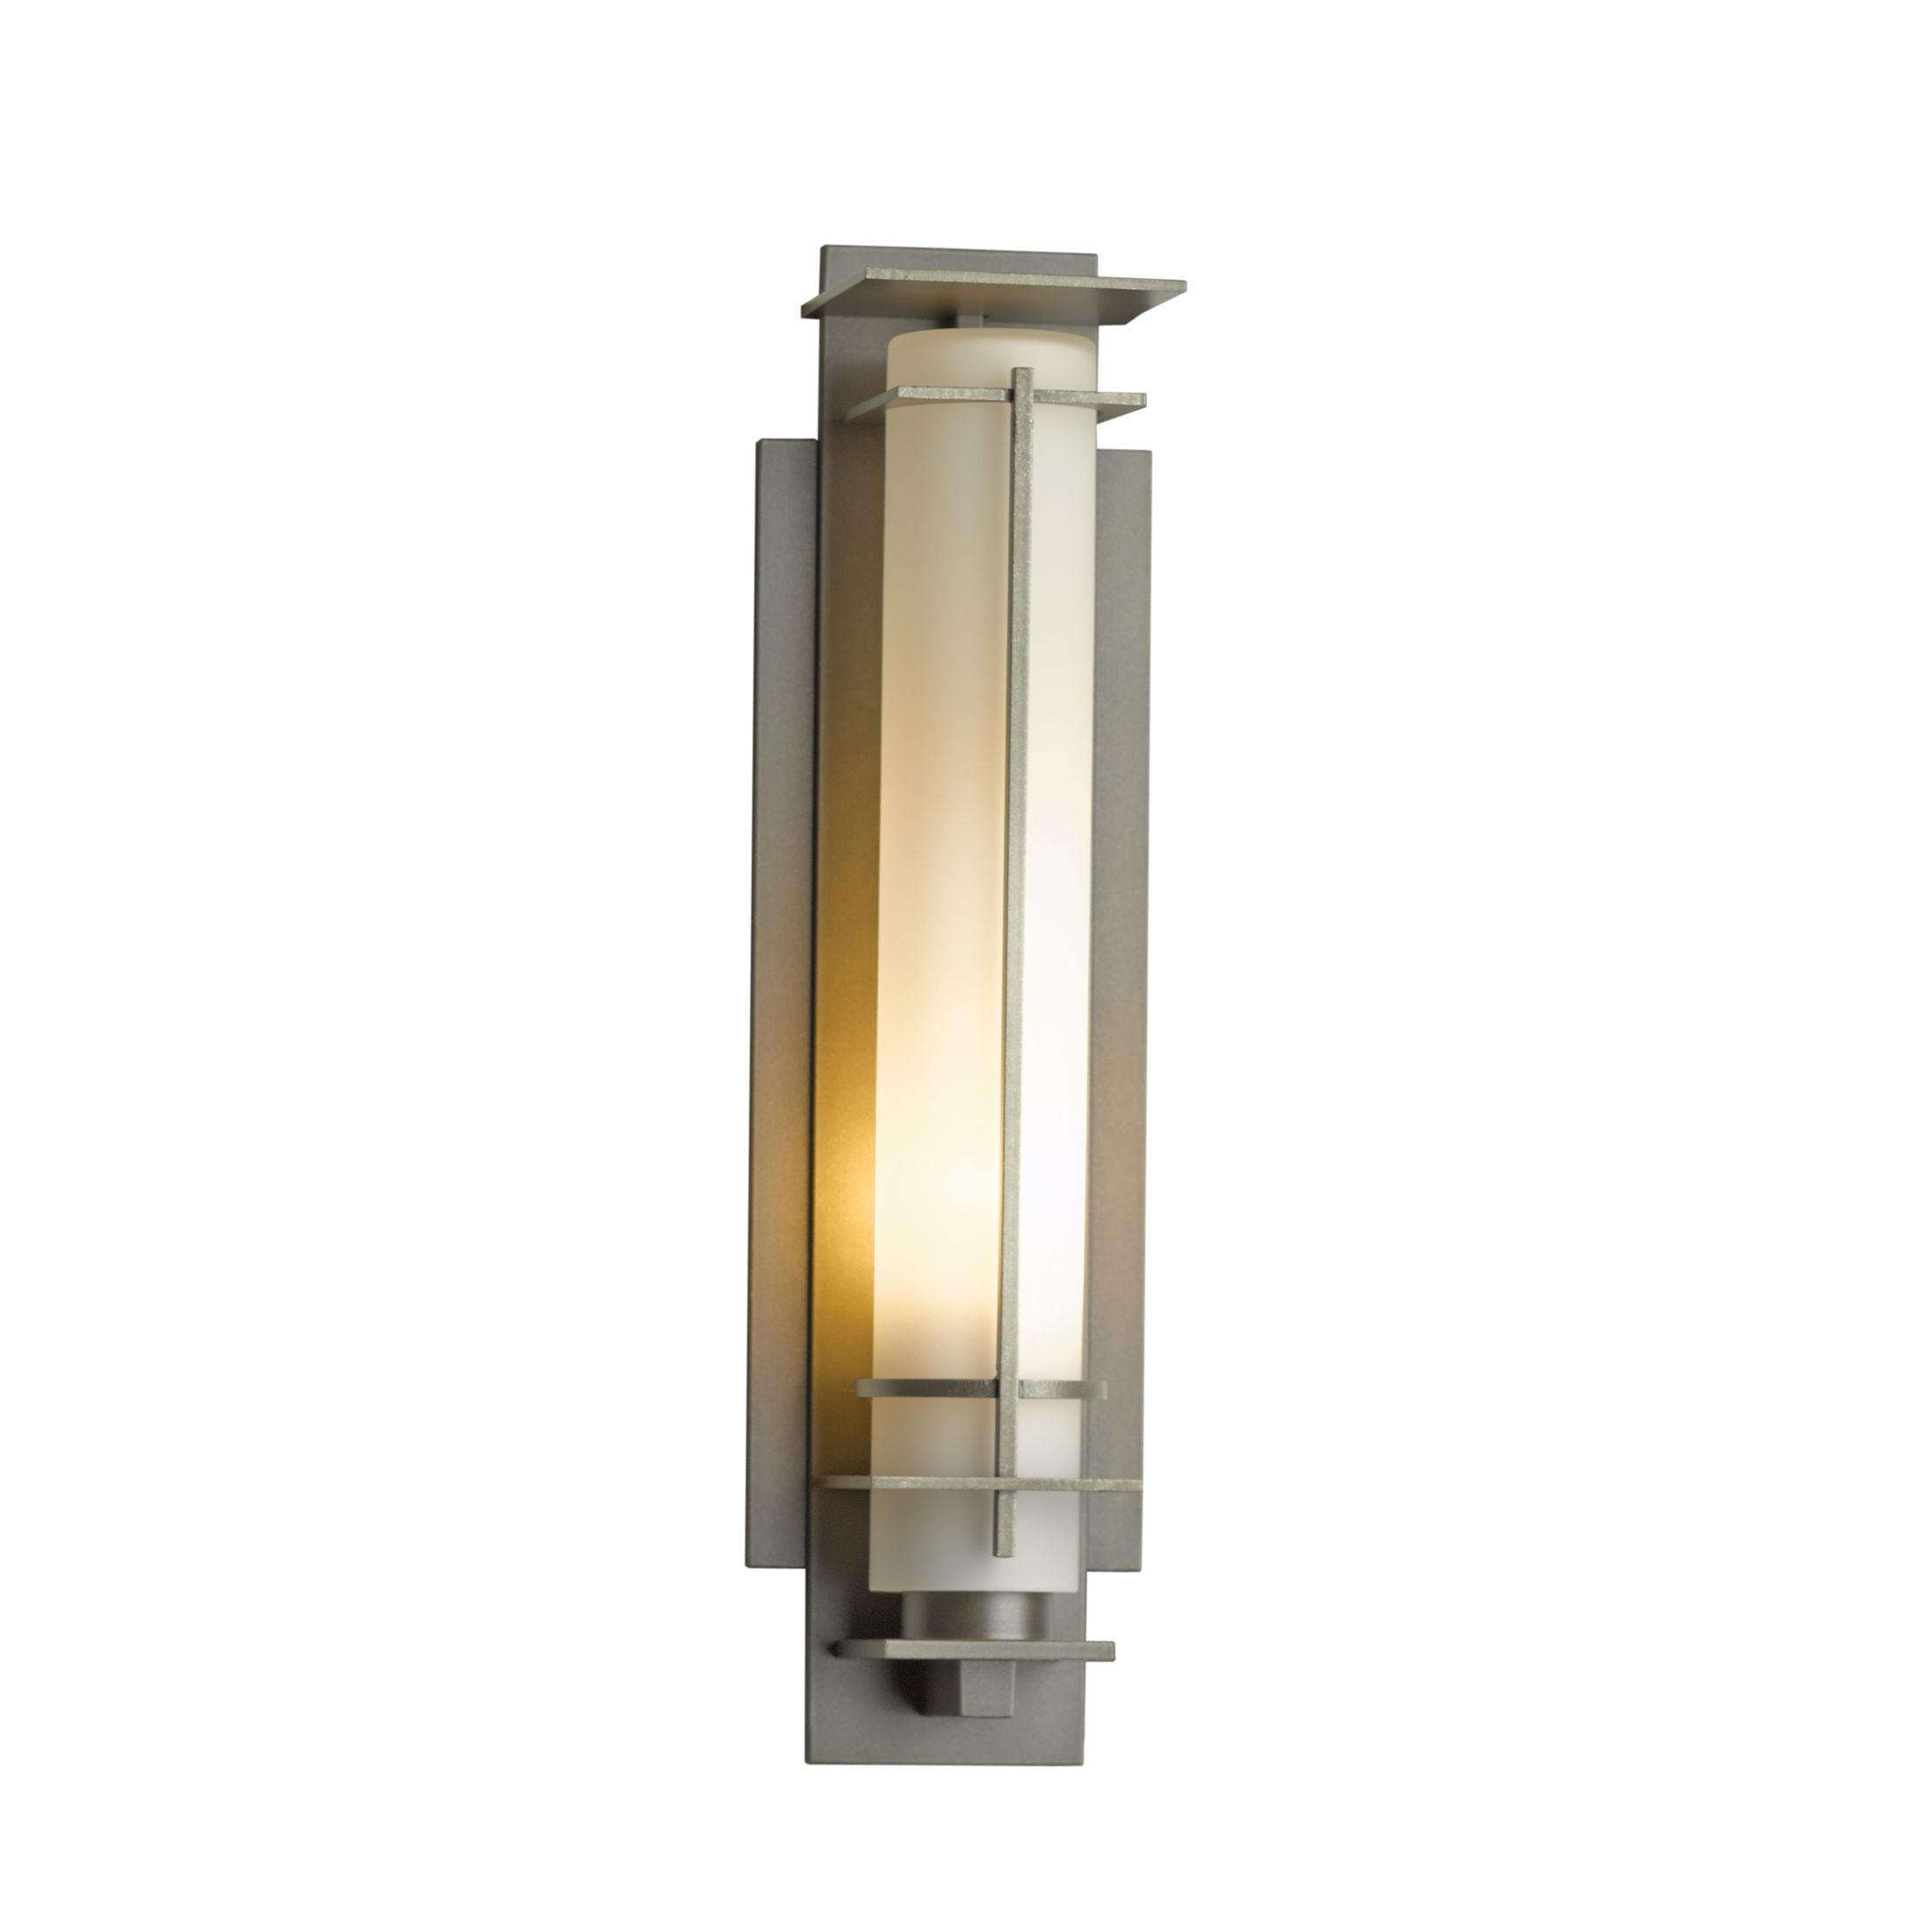 Thumbnail for After Hours Small Interior Sconce